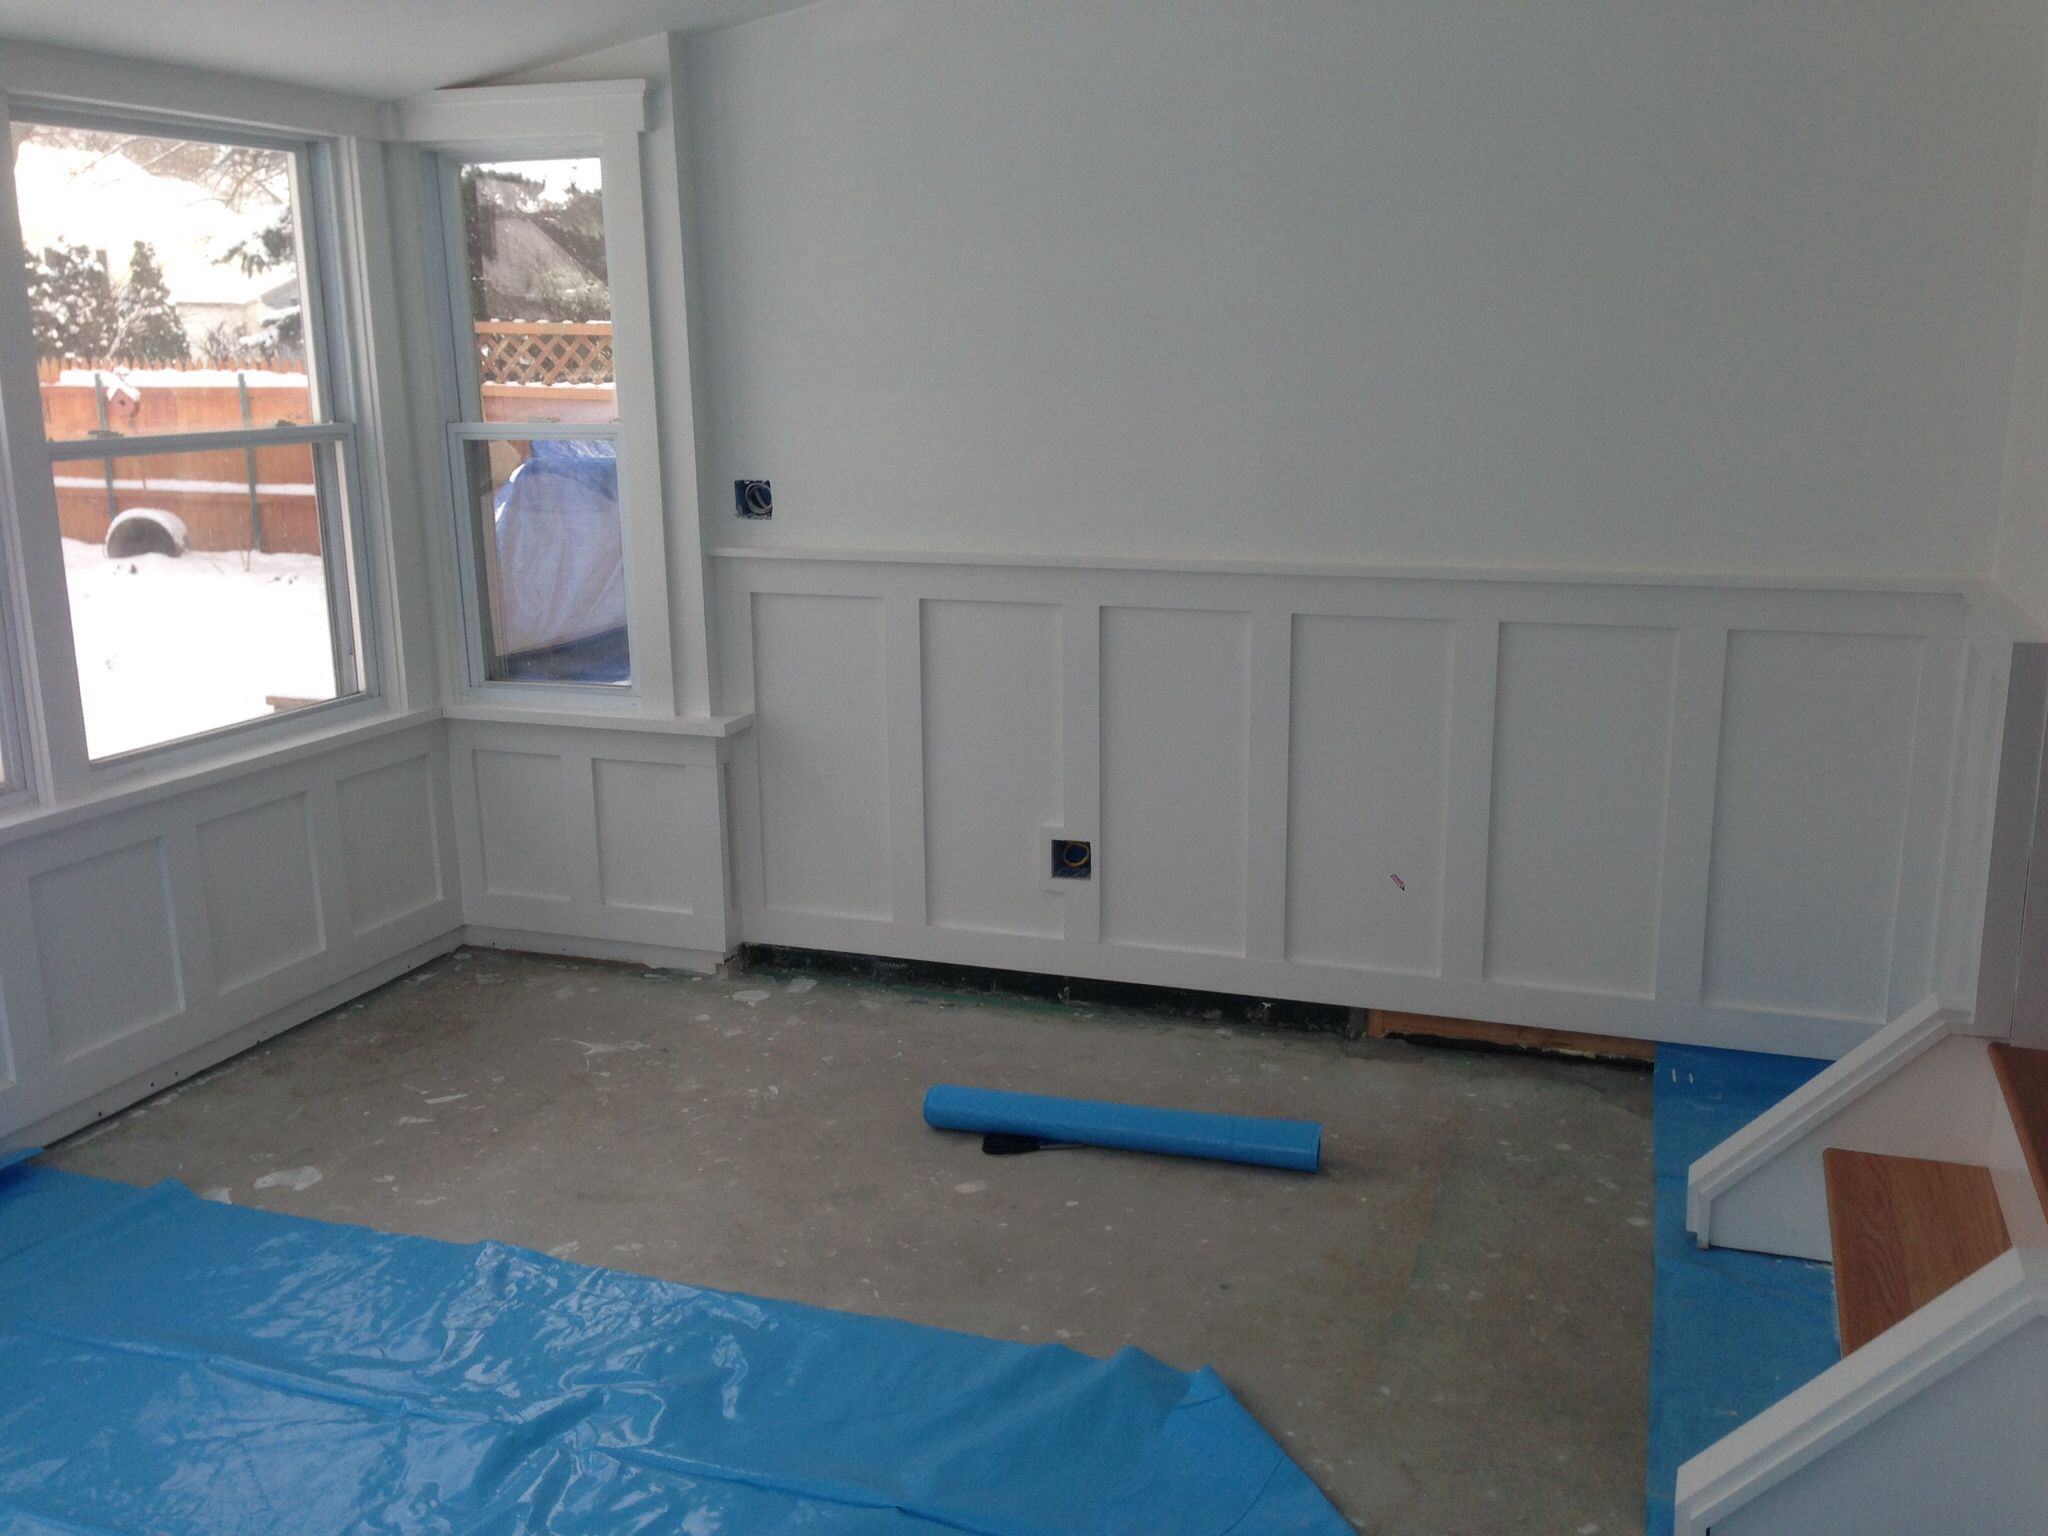 Wainscoting shaker style painted sherwin williams